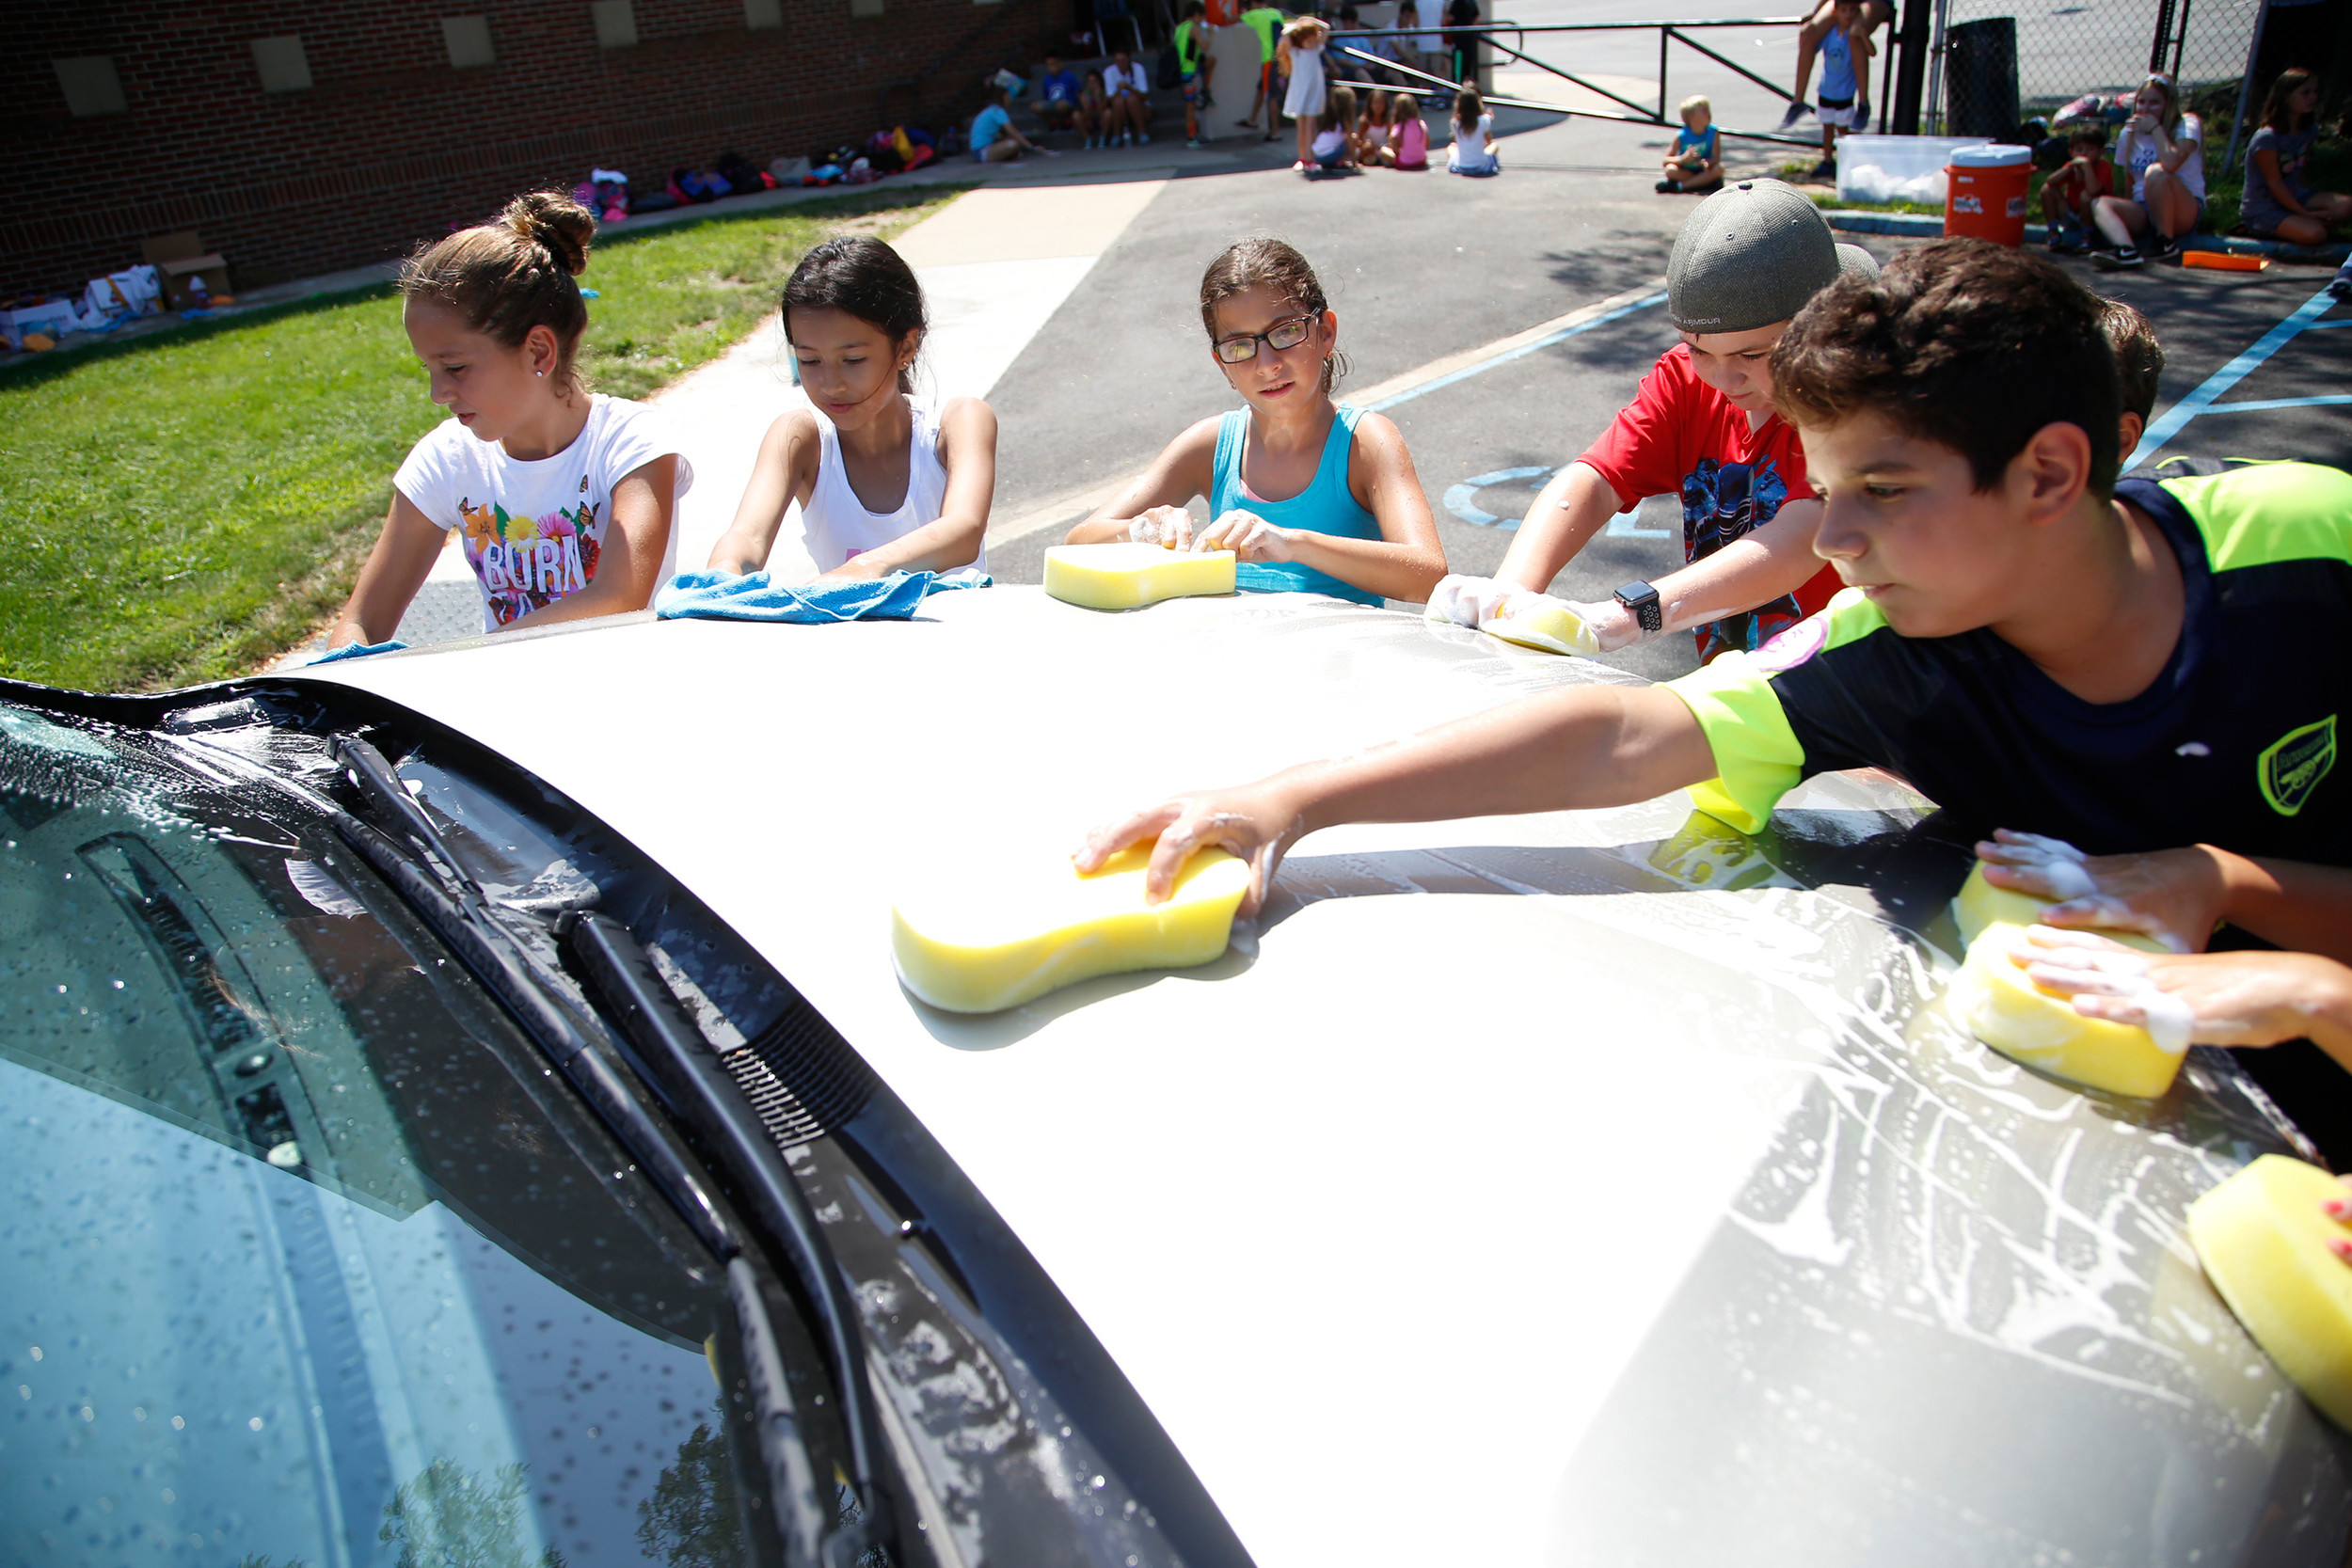 Kids from the School No. 8 summer recreation program clean a car in exchange for food donations. The food helps food-insecure families and individuals in Oceanside.